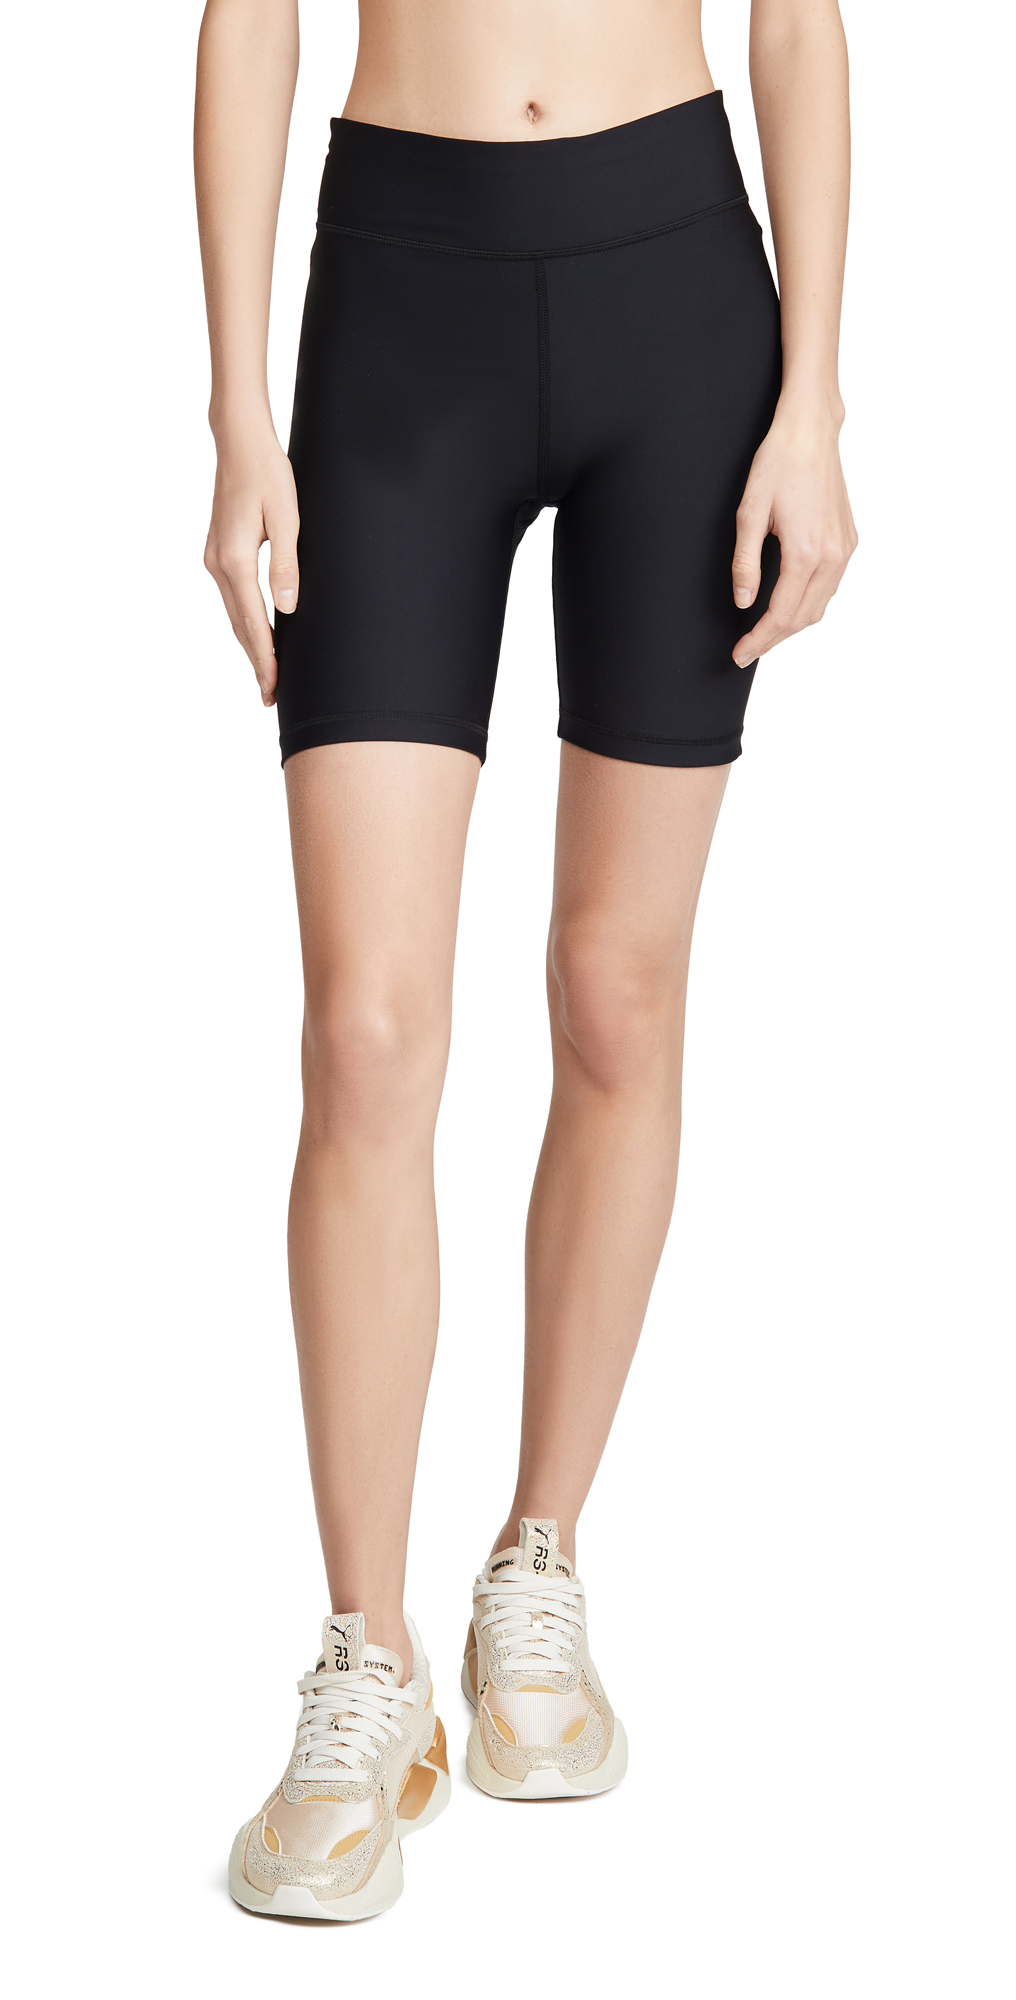 The Upside Matte Spin Shorts